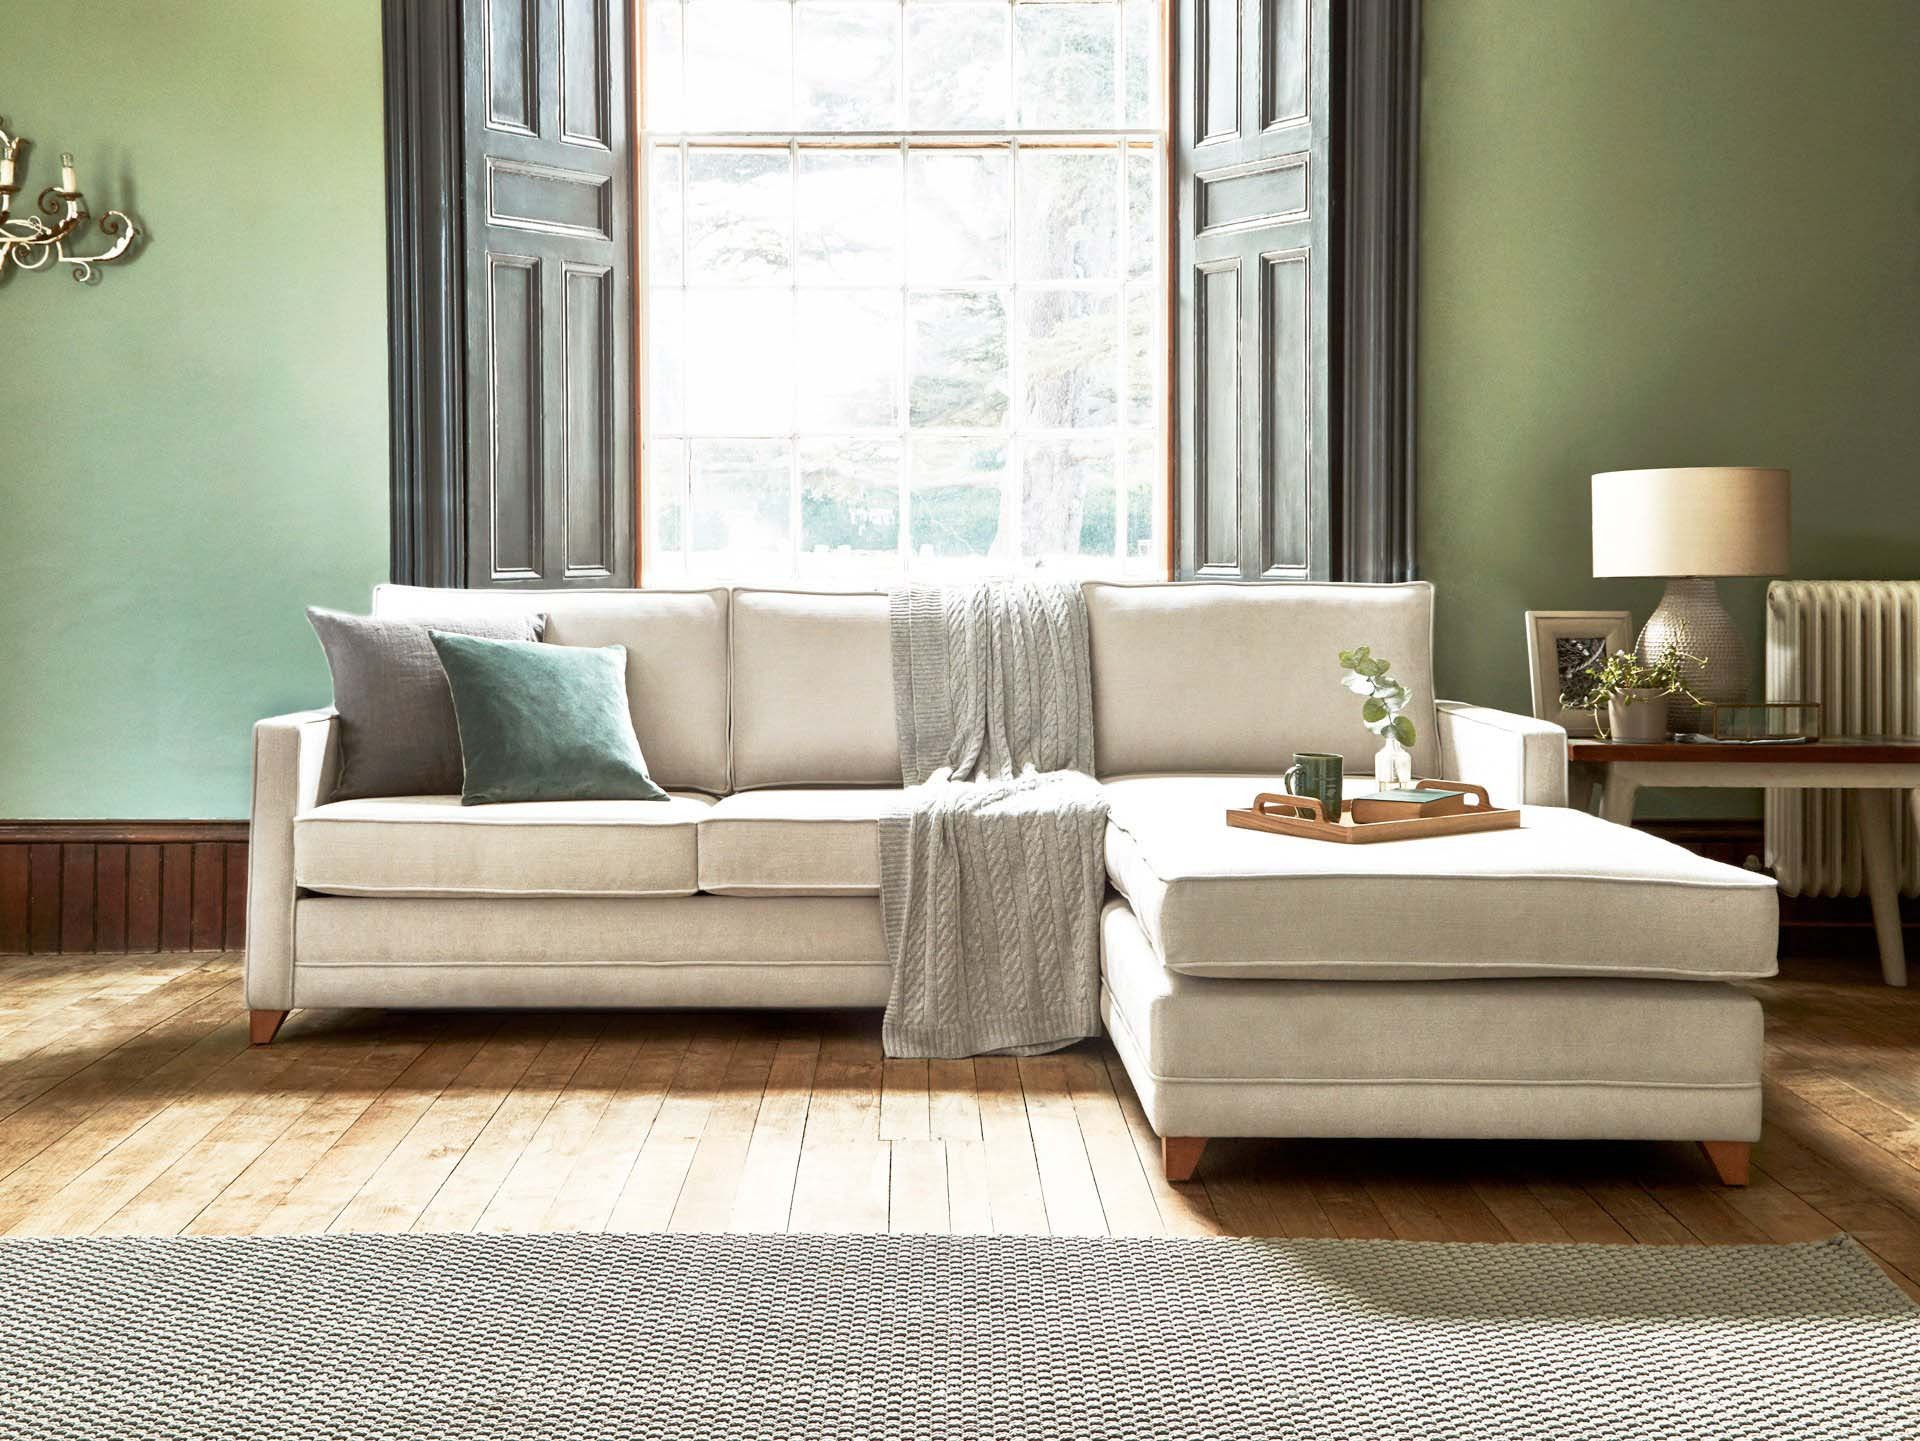 This is how I look in Stain Resistant Linen Cotton Stone as a right side chaise with reflex foam seat cushions